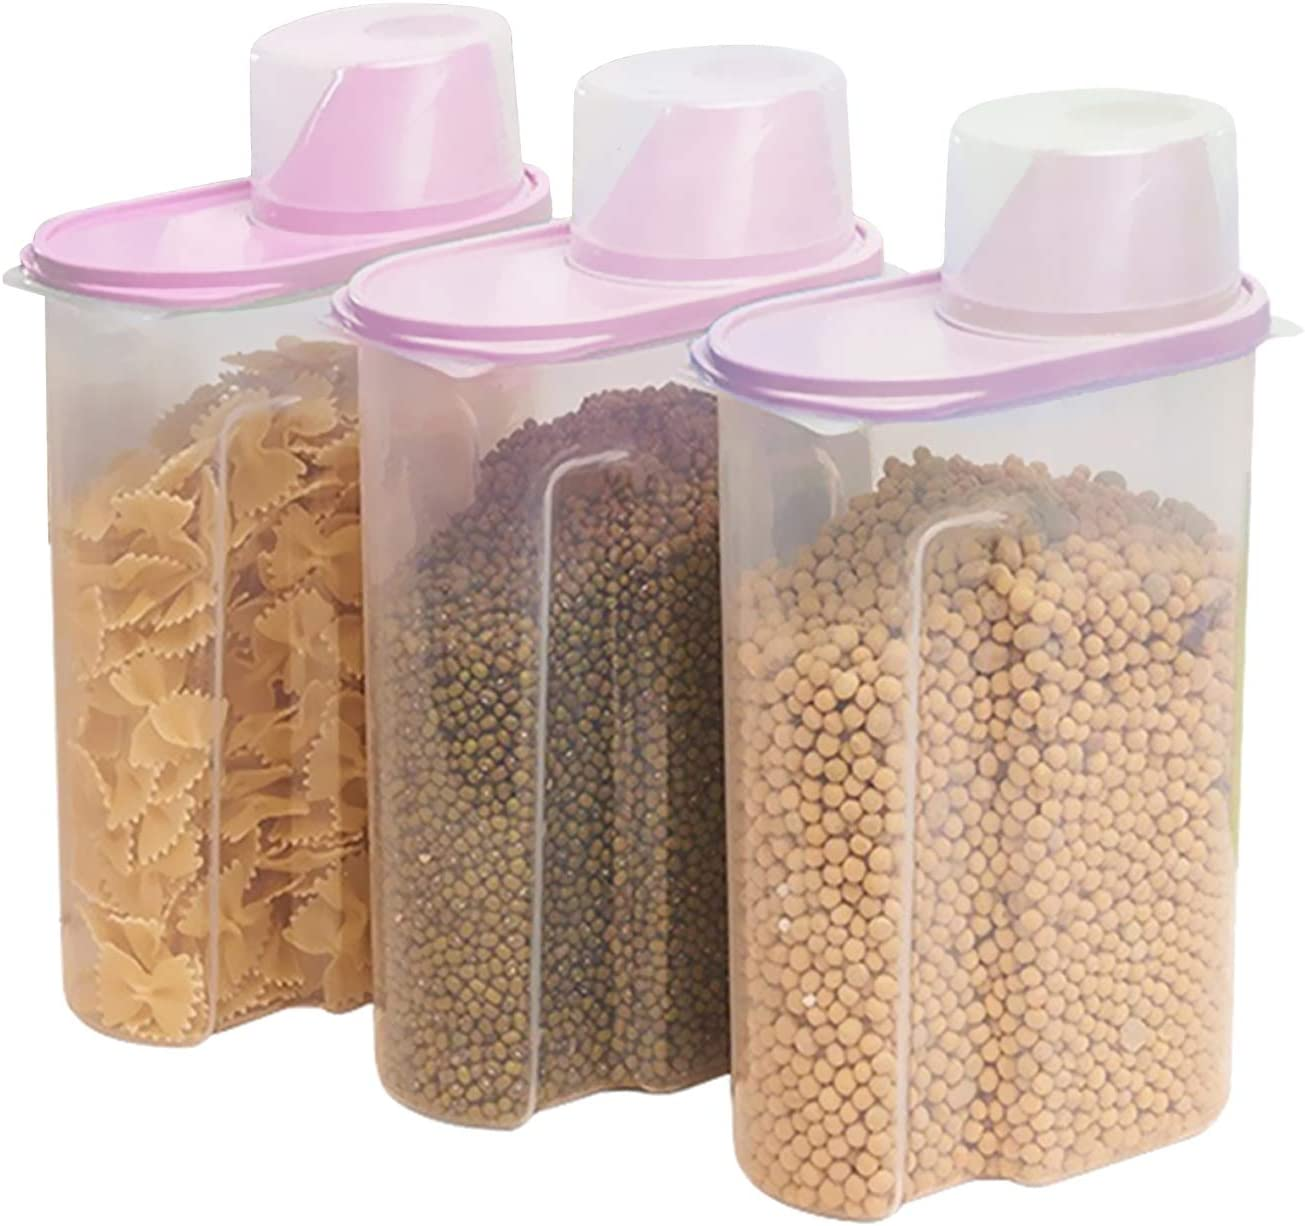 TRUSBER 3PACK 2.5L(89oz) Cereal Storage Plastic Jar Airtigh Transparent Kitchen Dry Food Dispenser Containers with Measuring Cup for Grain,Flour,Rice,Candy,Cookies,etc